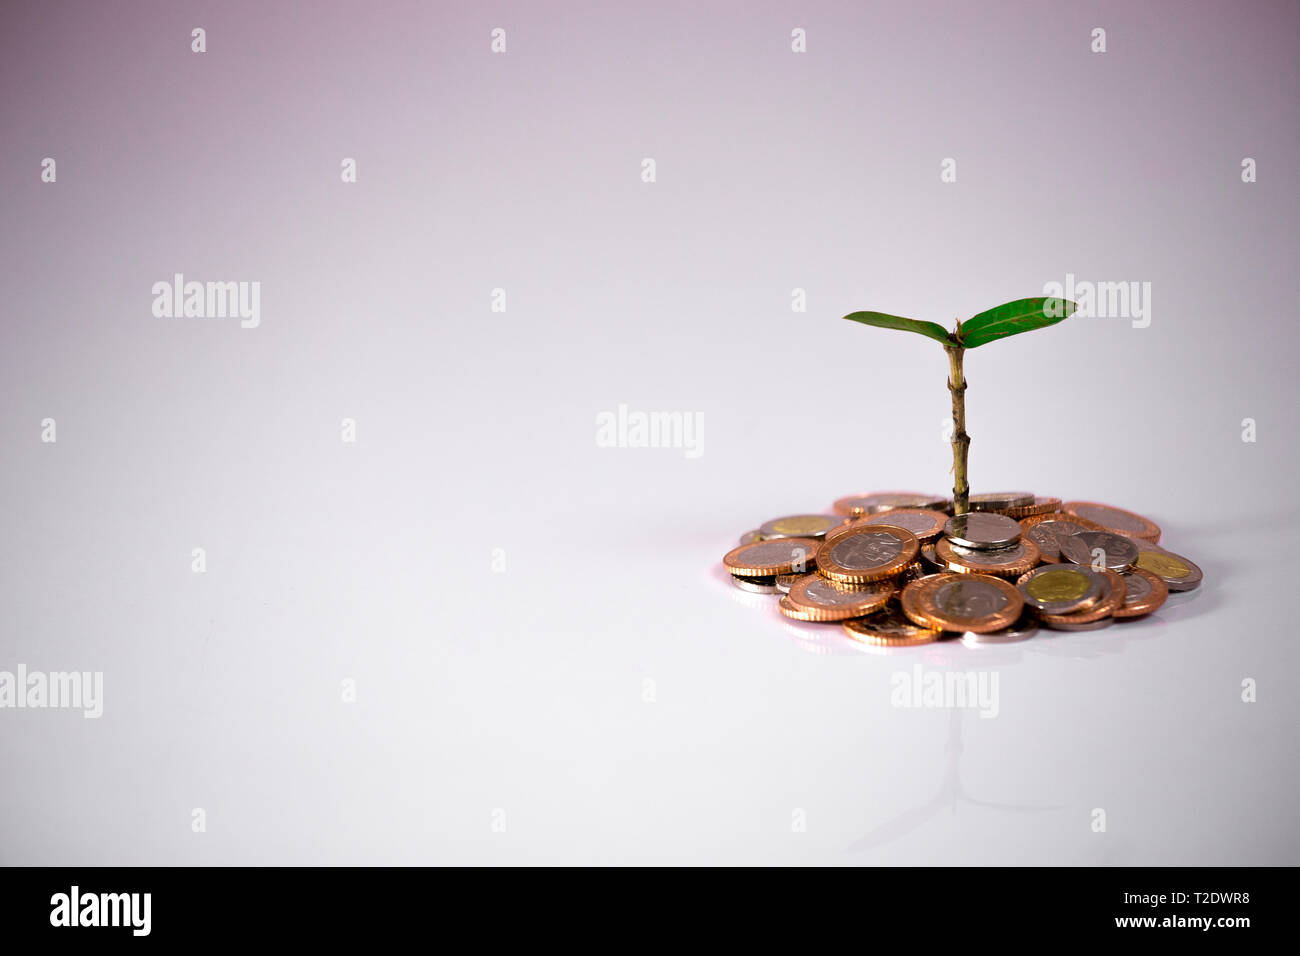 Green plant on coins showing financial growth on white background - Stock Image